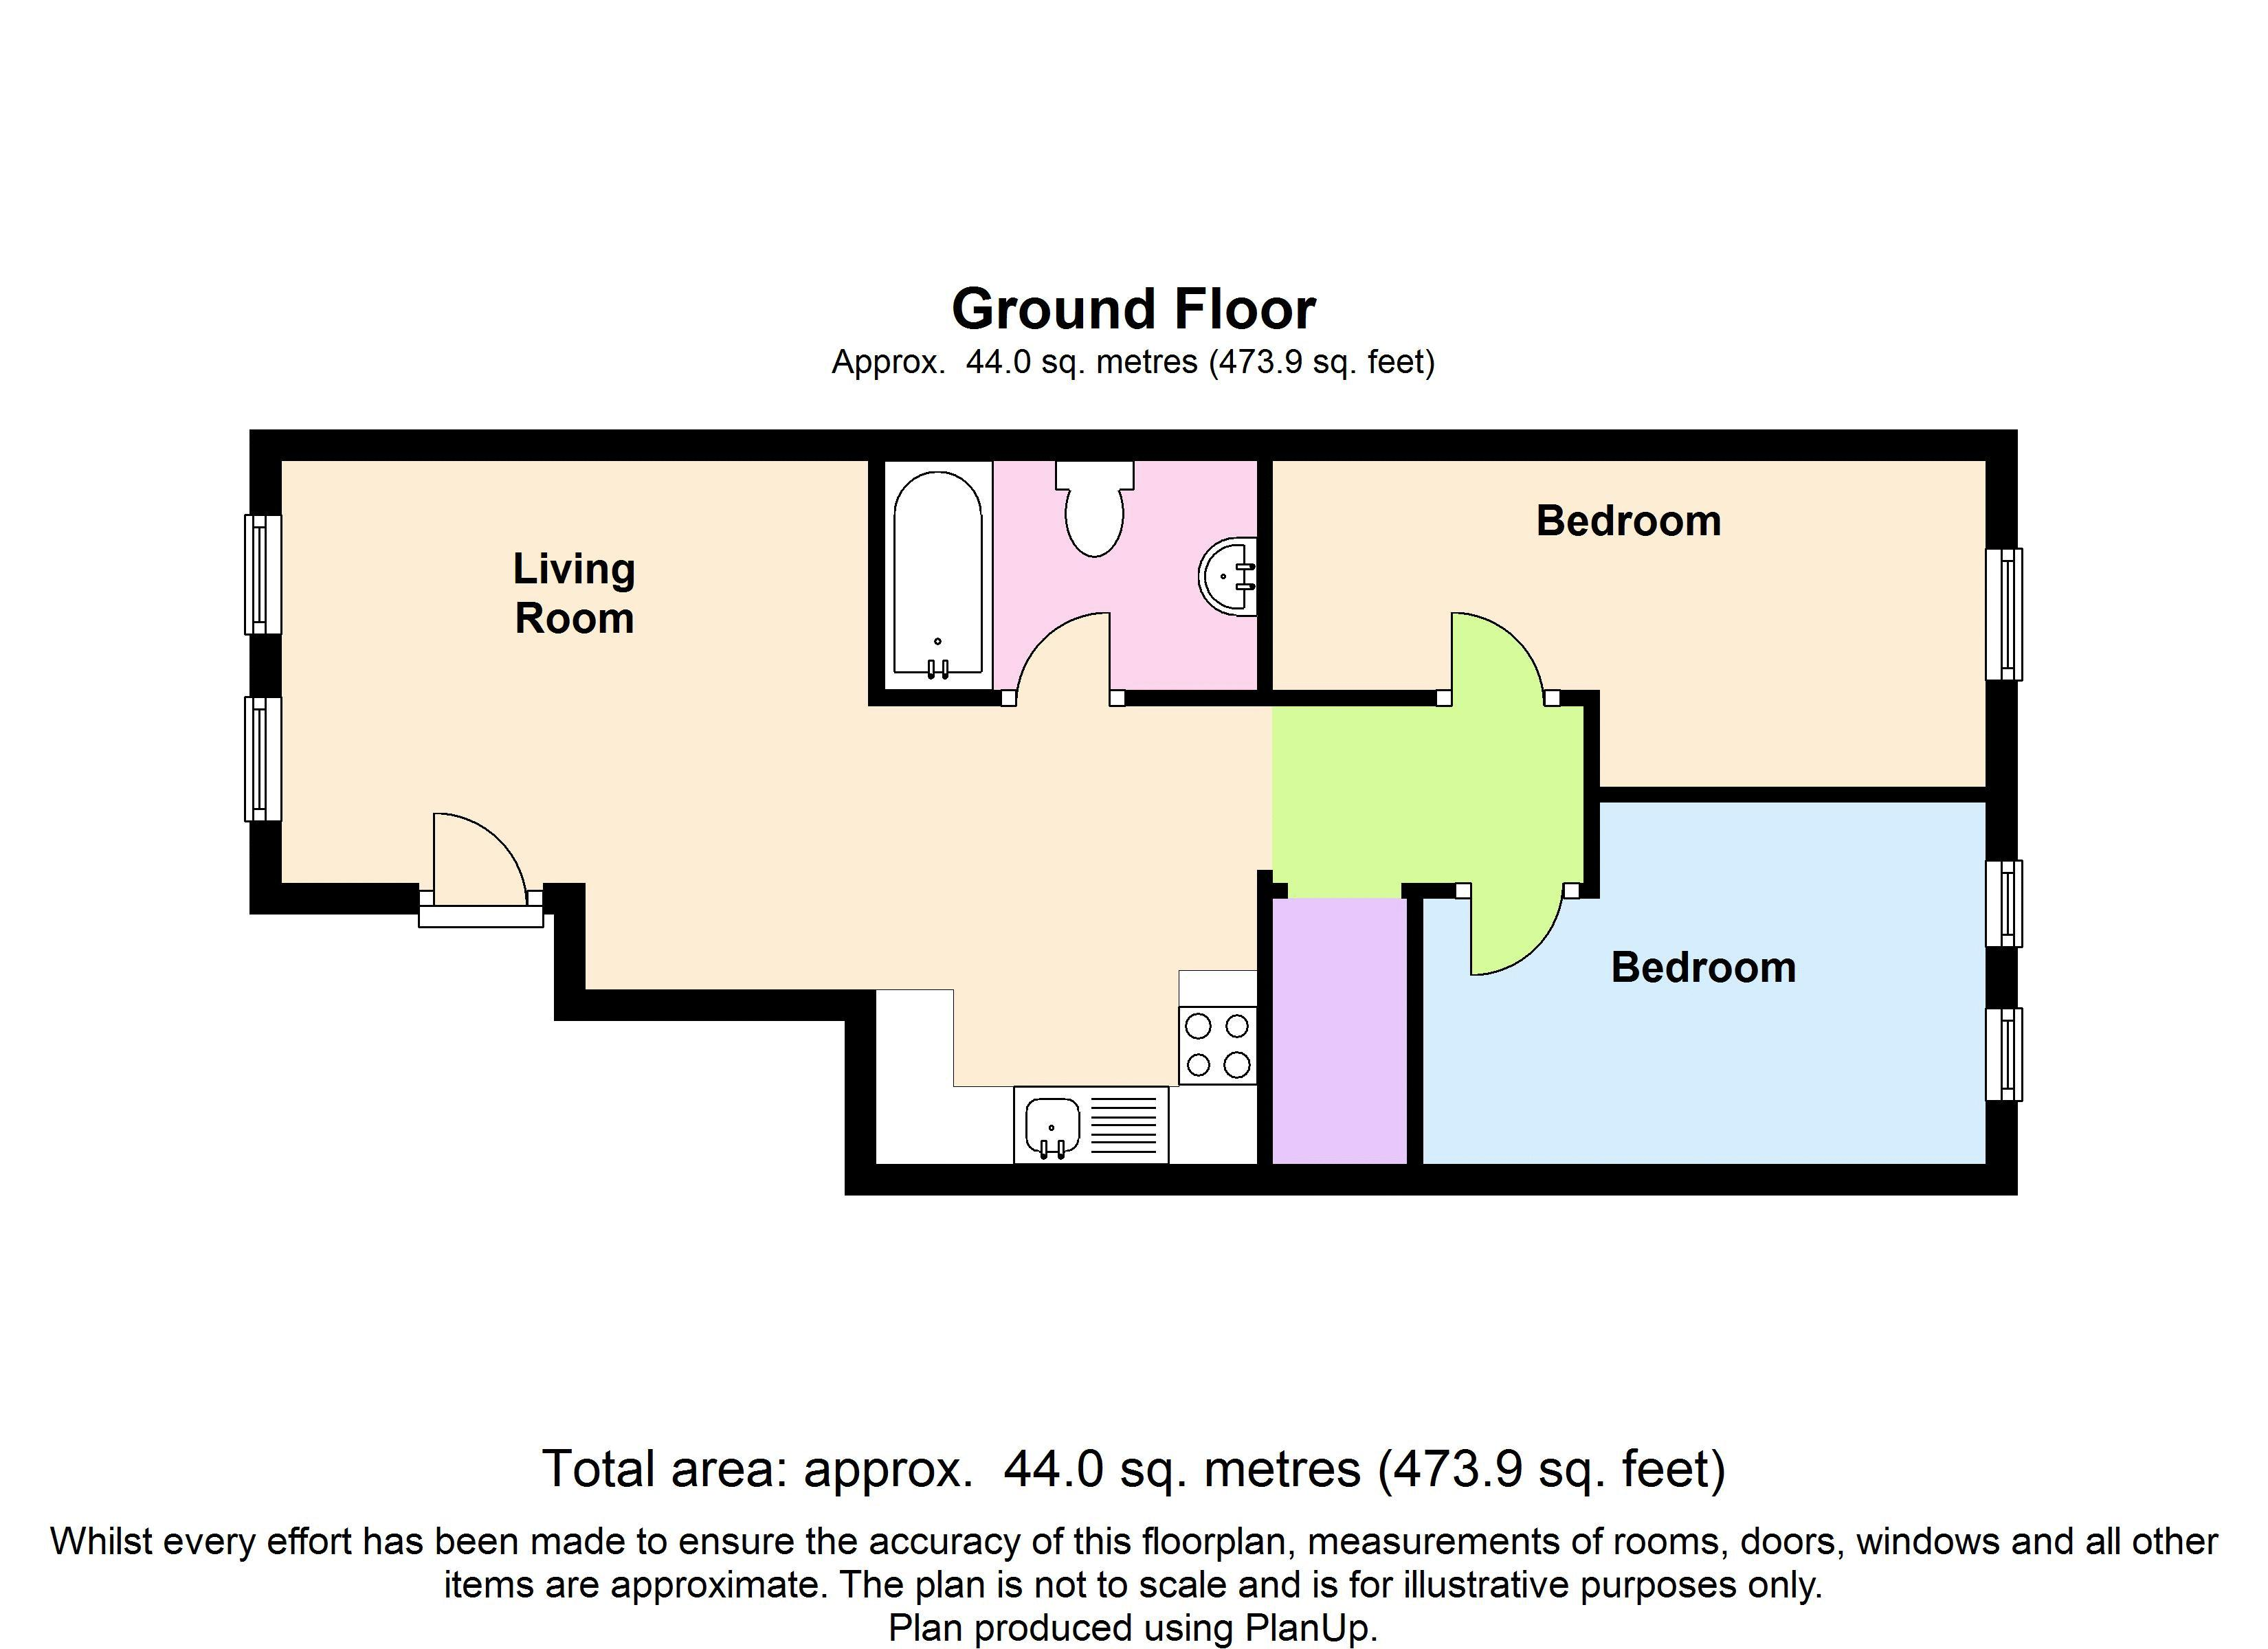 Floor plans for Bedford Place, Brighton property for sale in Central Brighton, Brighton by Coapt